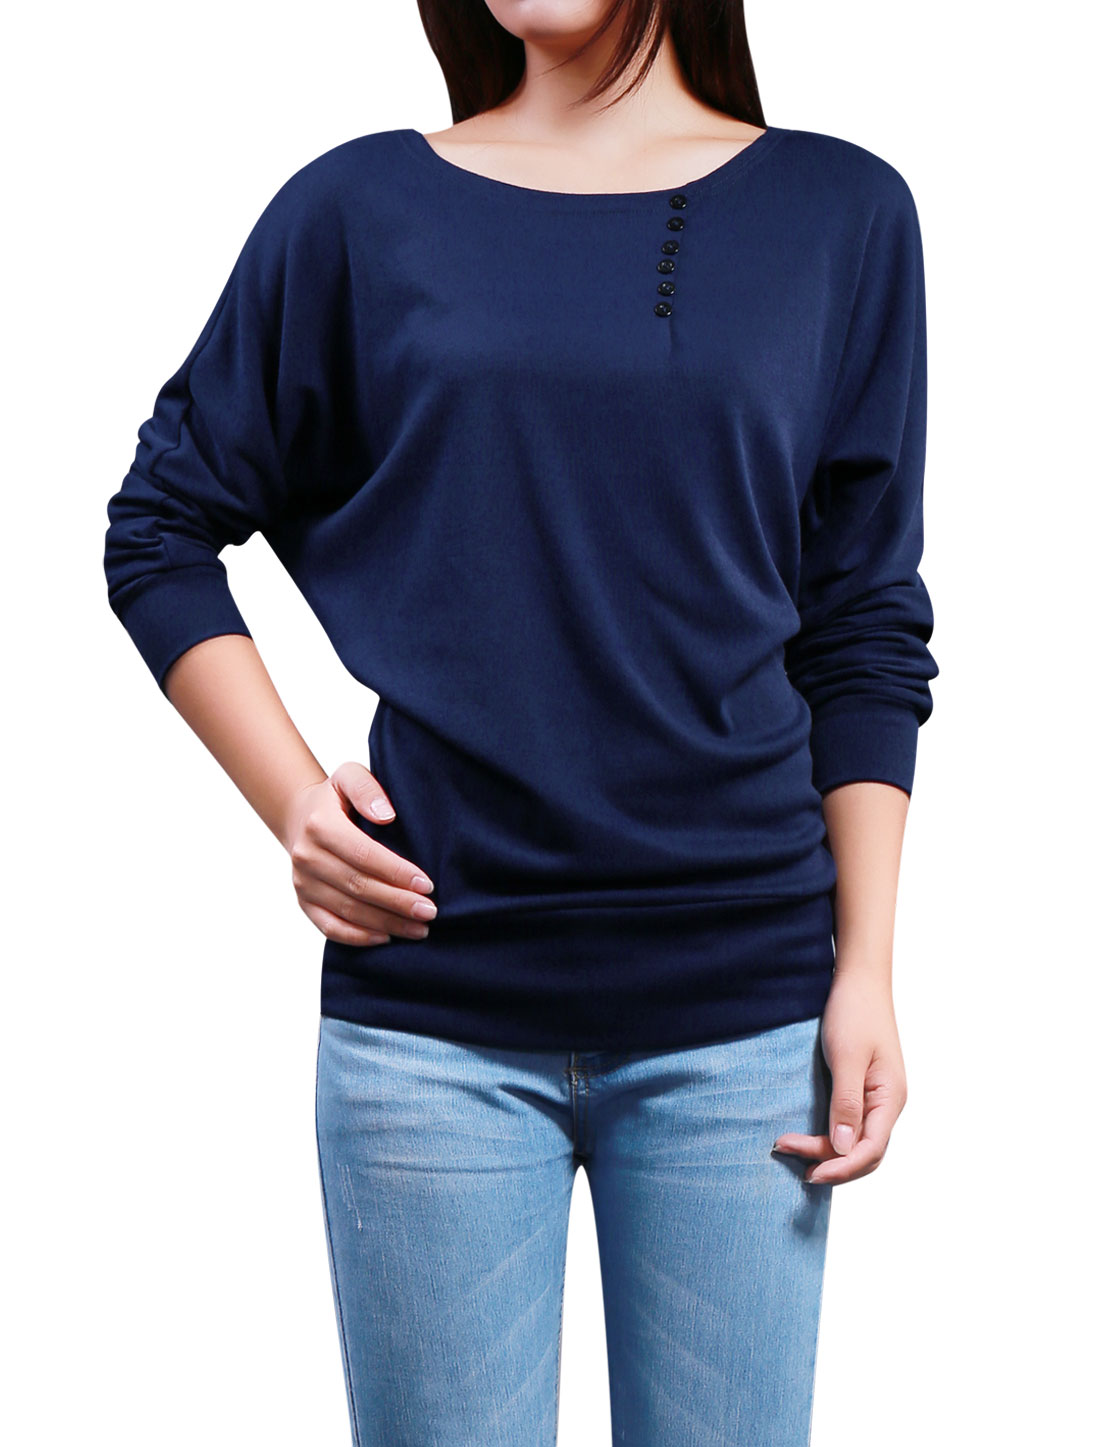 Ladies Chic Boat Neck Long Batwing Sleeve Design Dark Blue Tops S